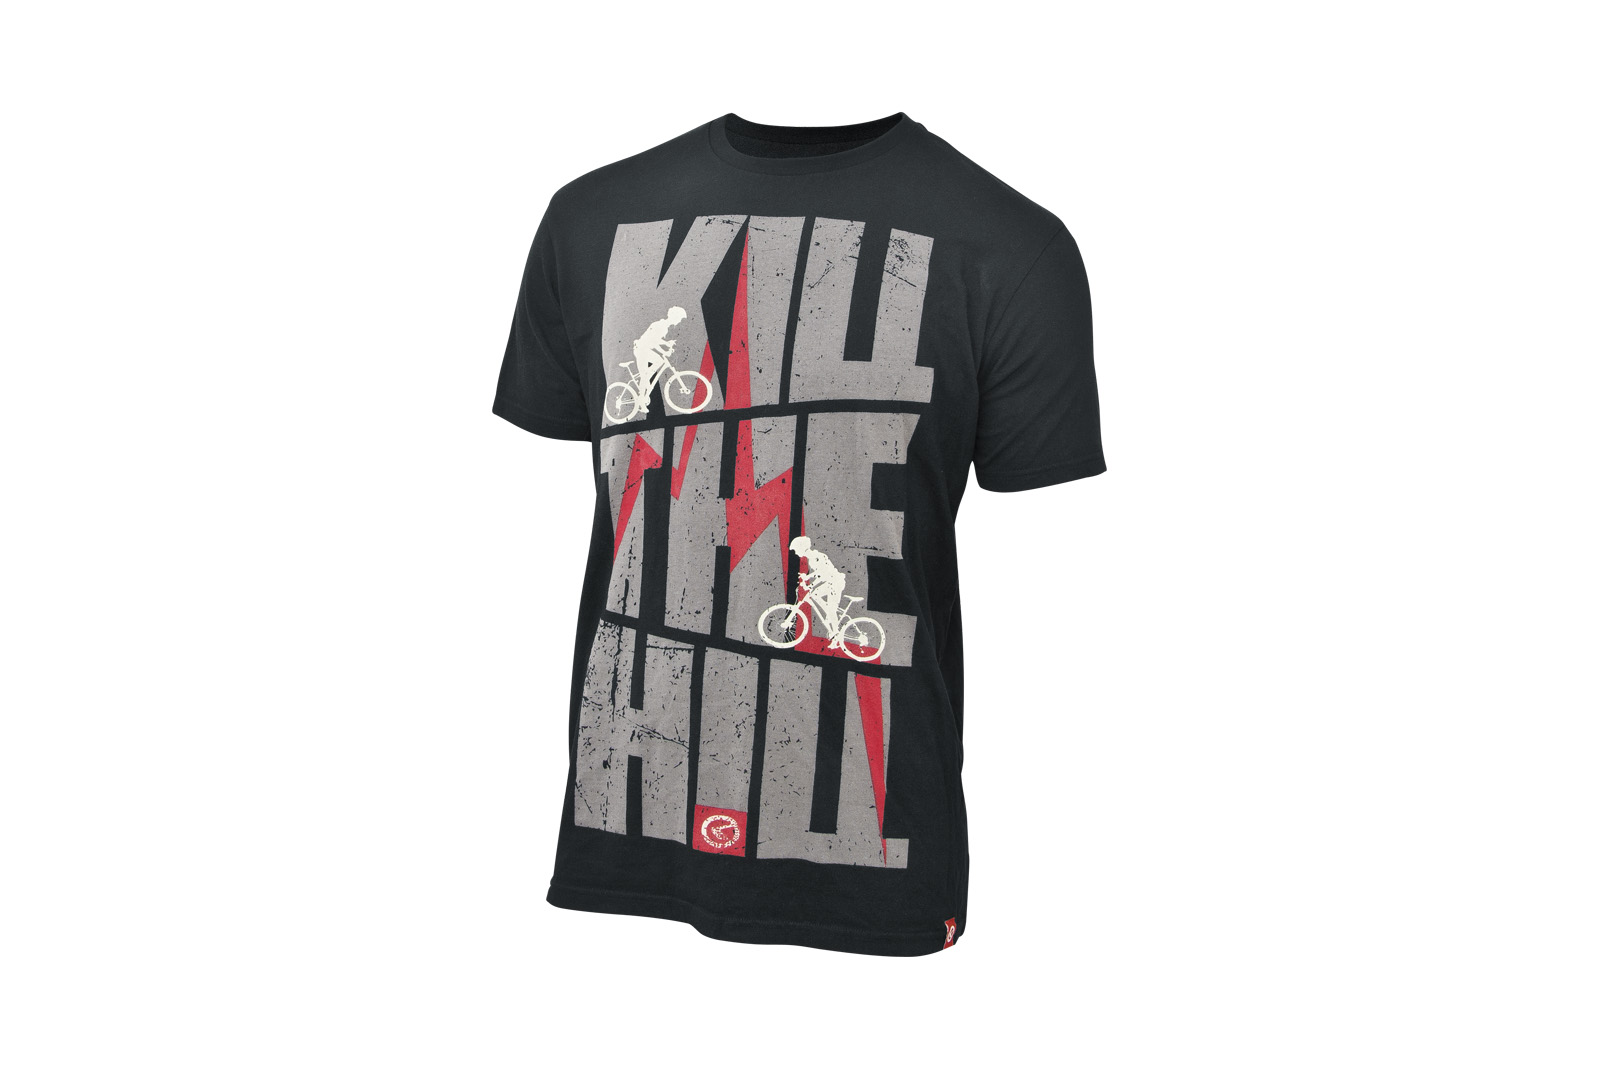 T-Shirt KELLYS KILL THE HILL kurzarm black - S - Mega Handelsgesellschaft